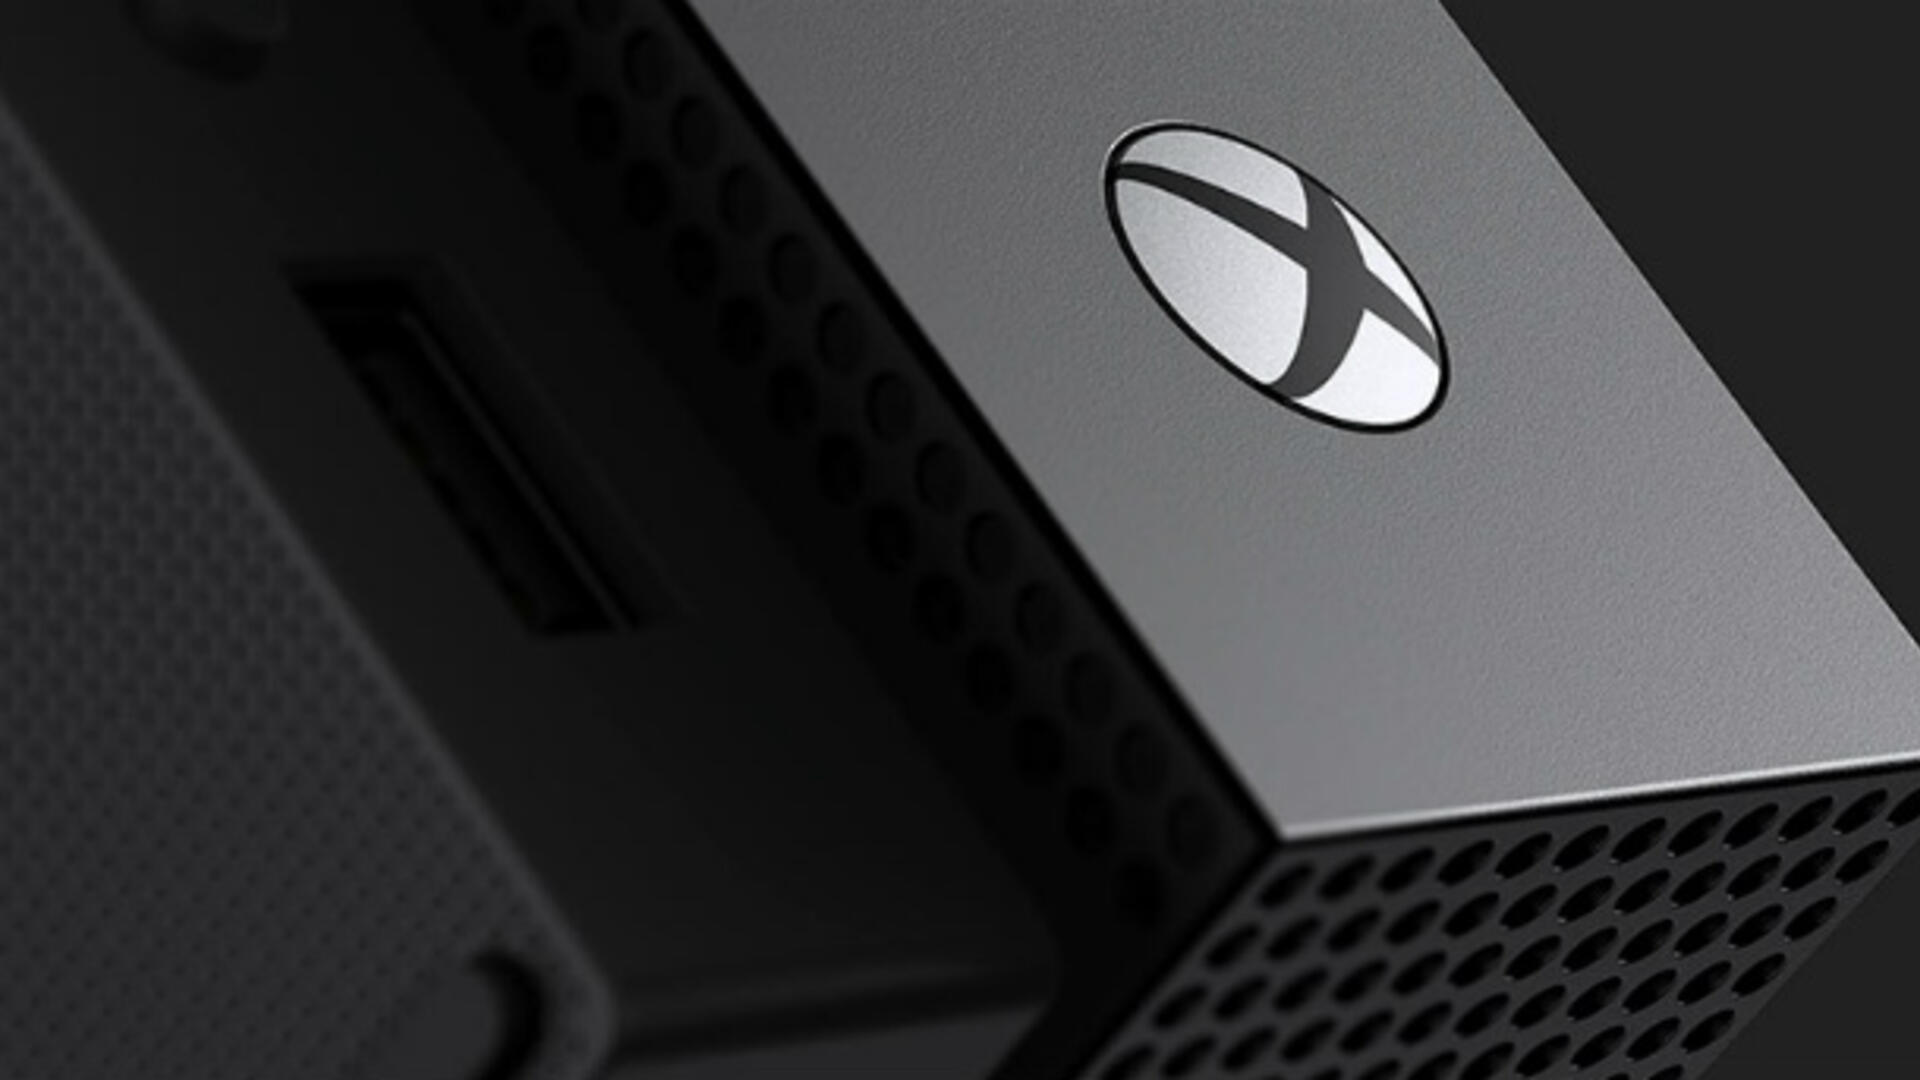 What We Want From Xbox in 2019